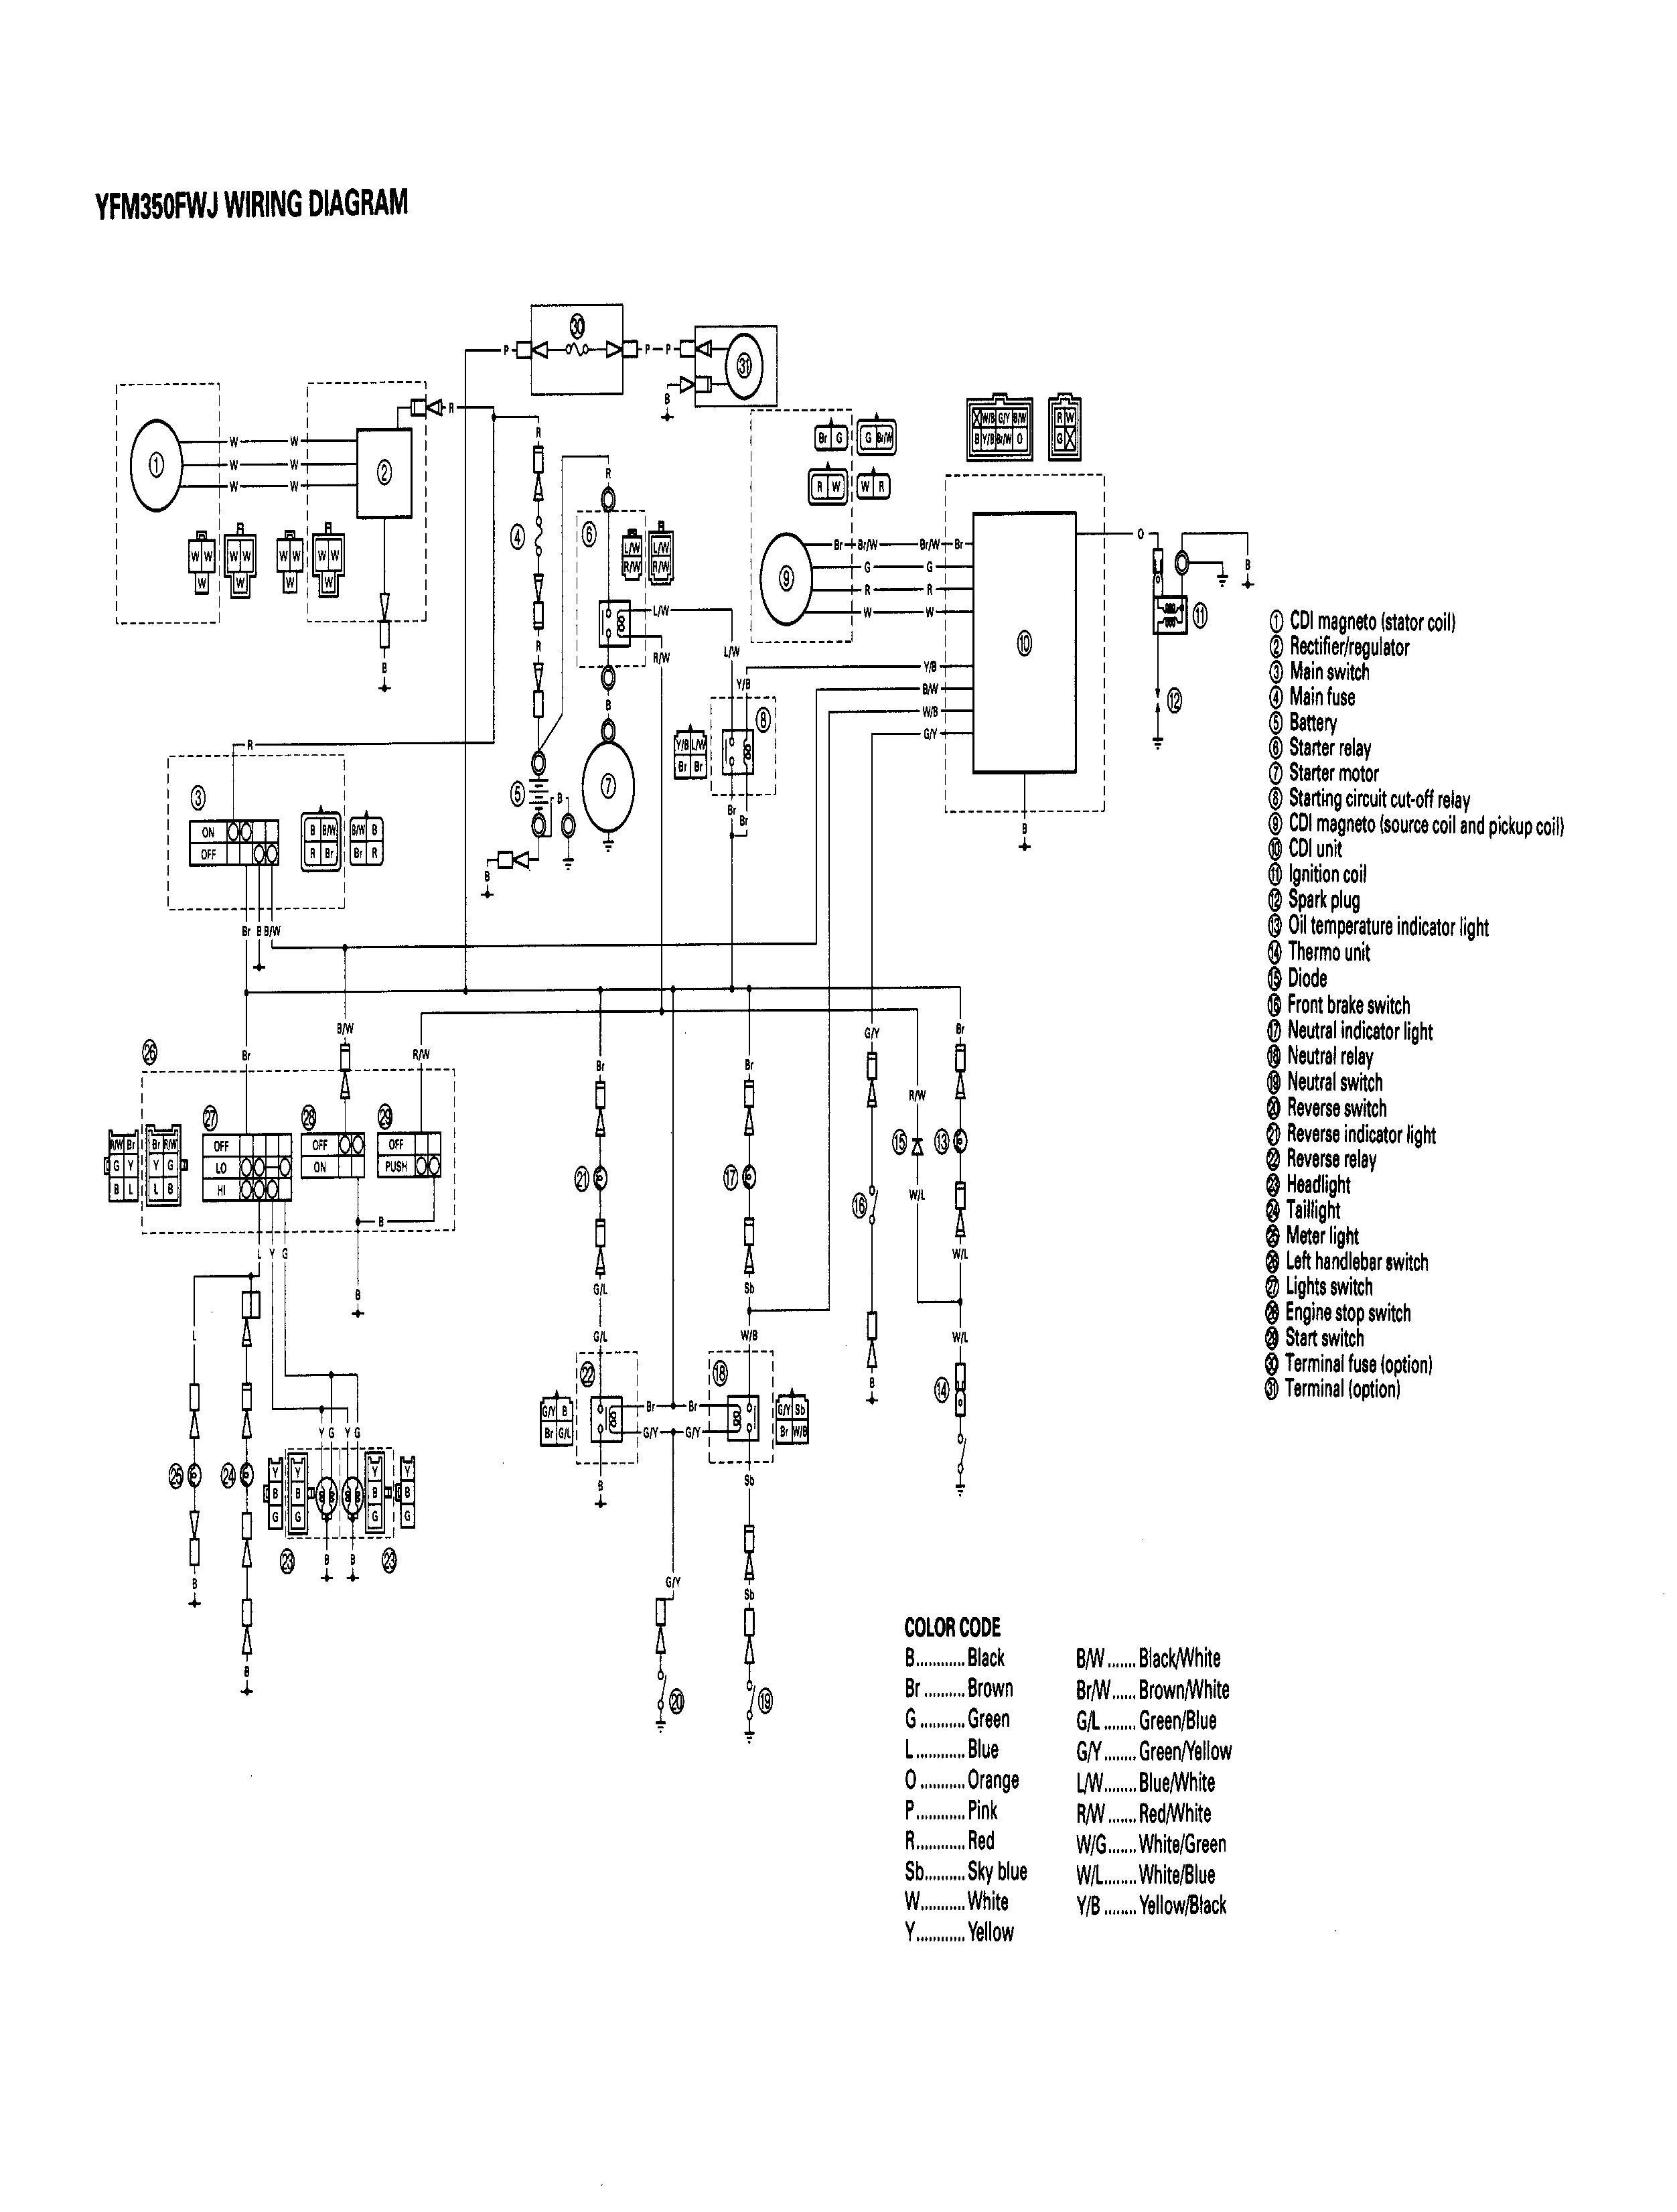 2005 big bear 250 wiring diagram 1996 bigbear 350 4x4 wiring - yamaha grizzly atv forum 2007 big bear 250 wiring diagram #1